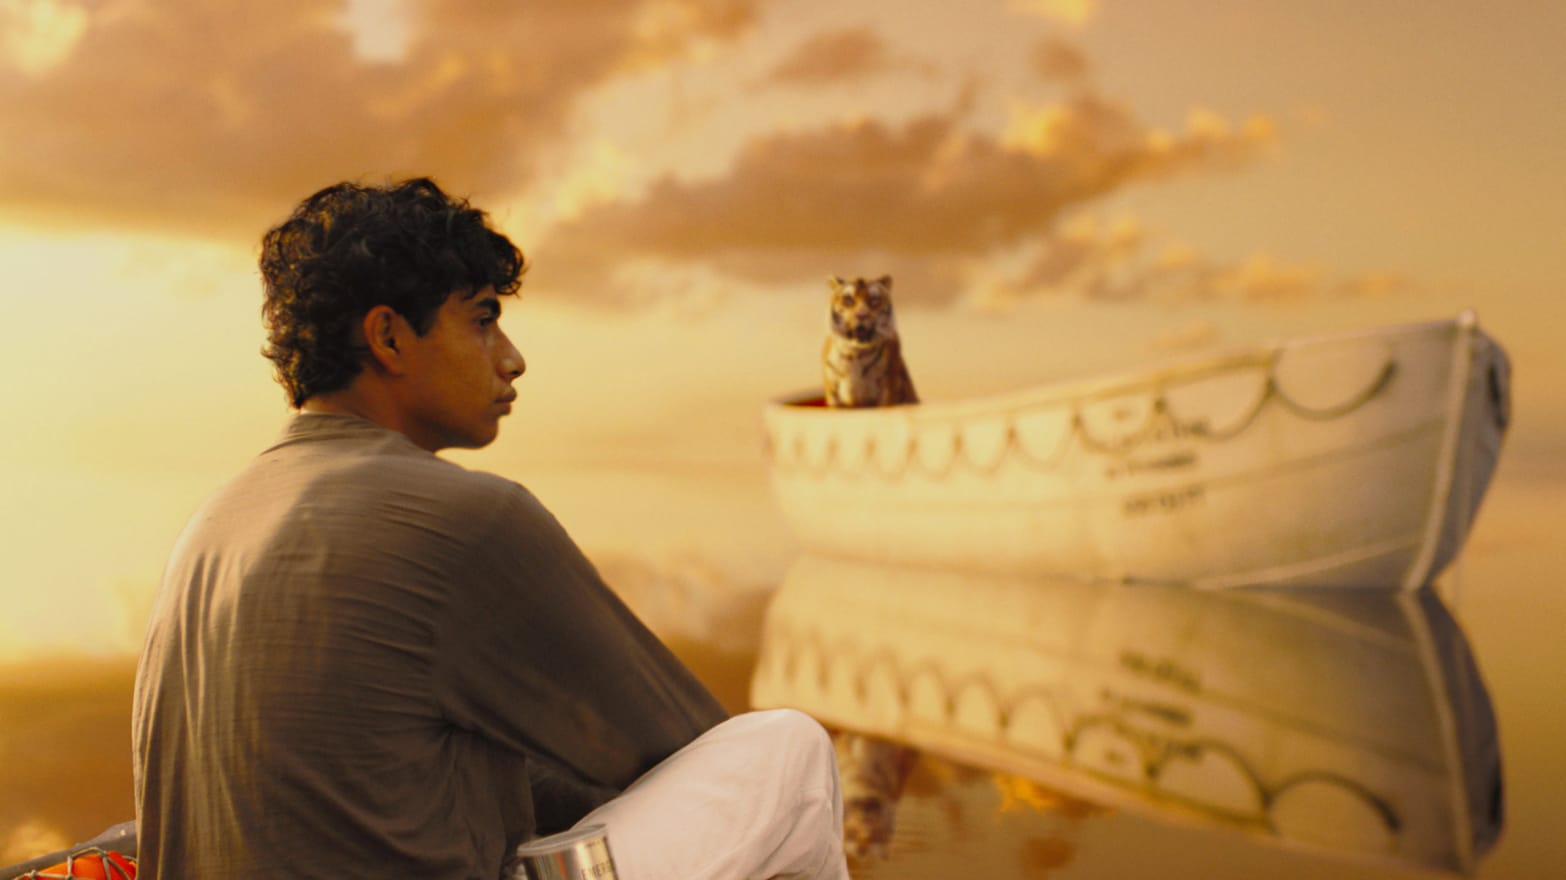 Life Of Pi Comparing Ang Lee S Film With Yann Martel S Novel